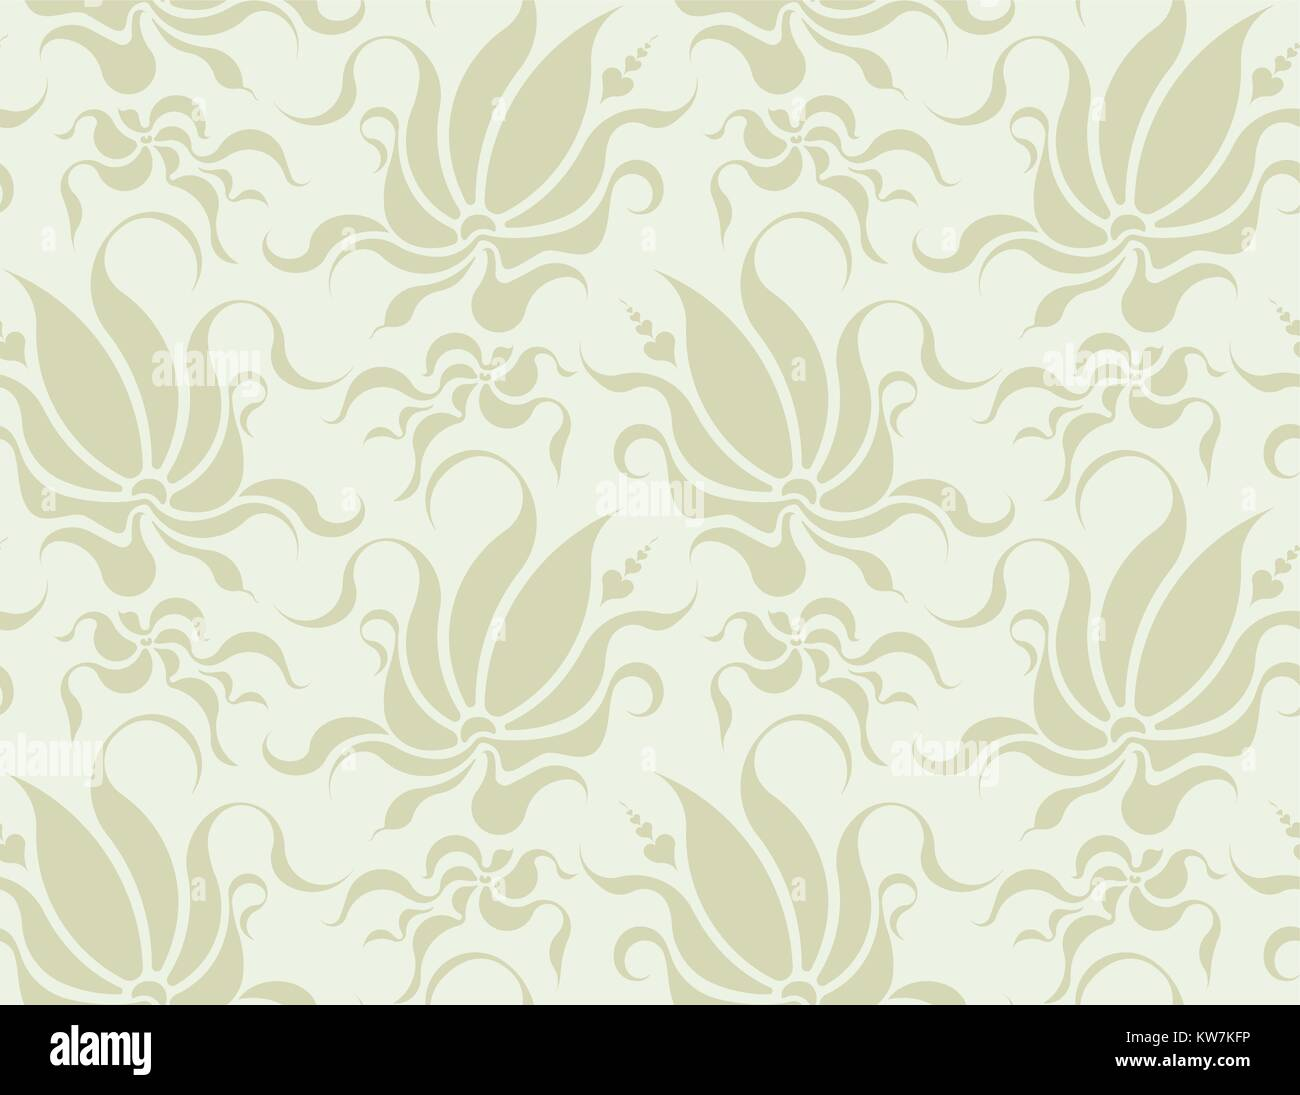 Abstract floral seamless background in very light, gentle tones. - Stock Vector